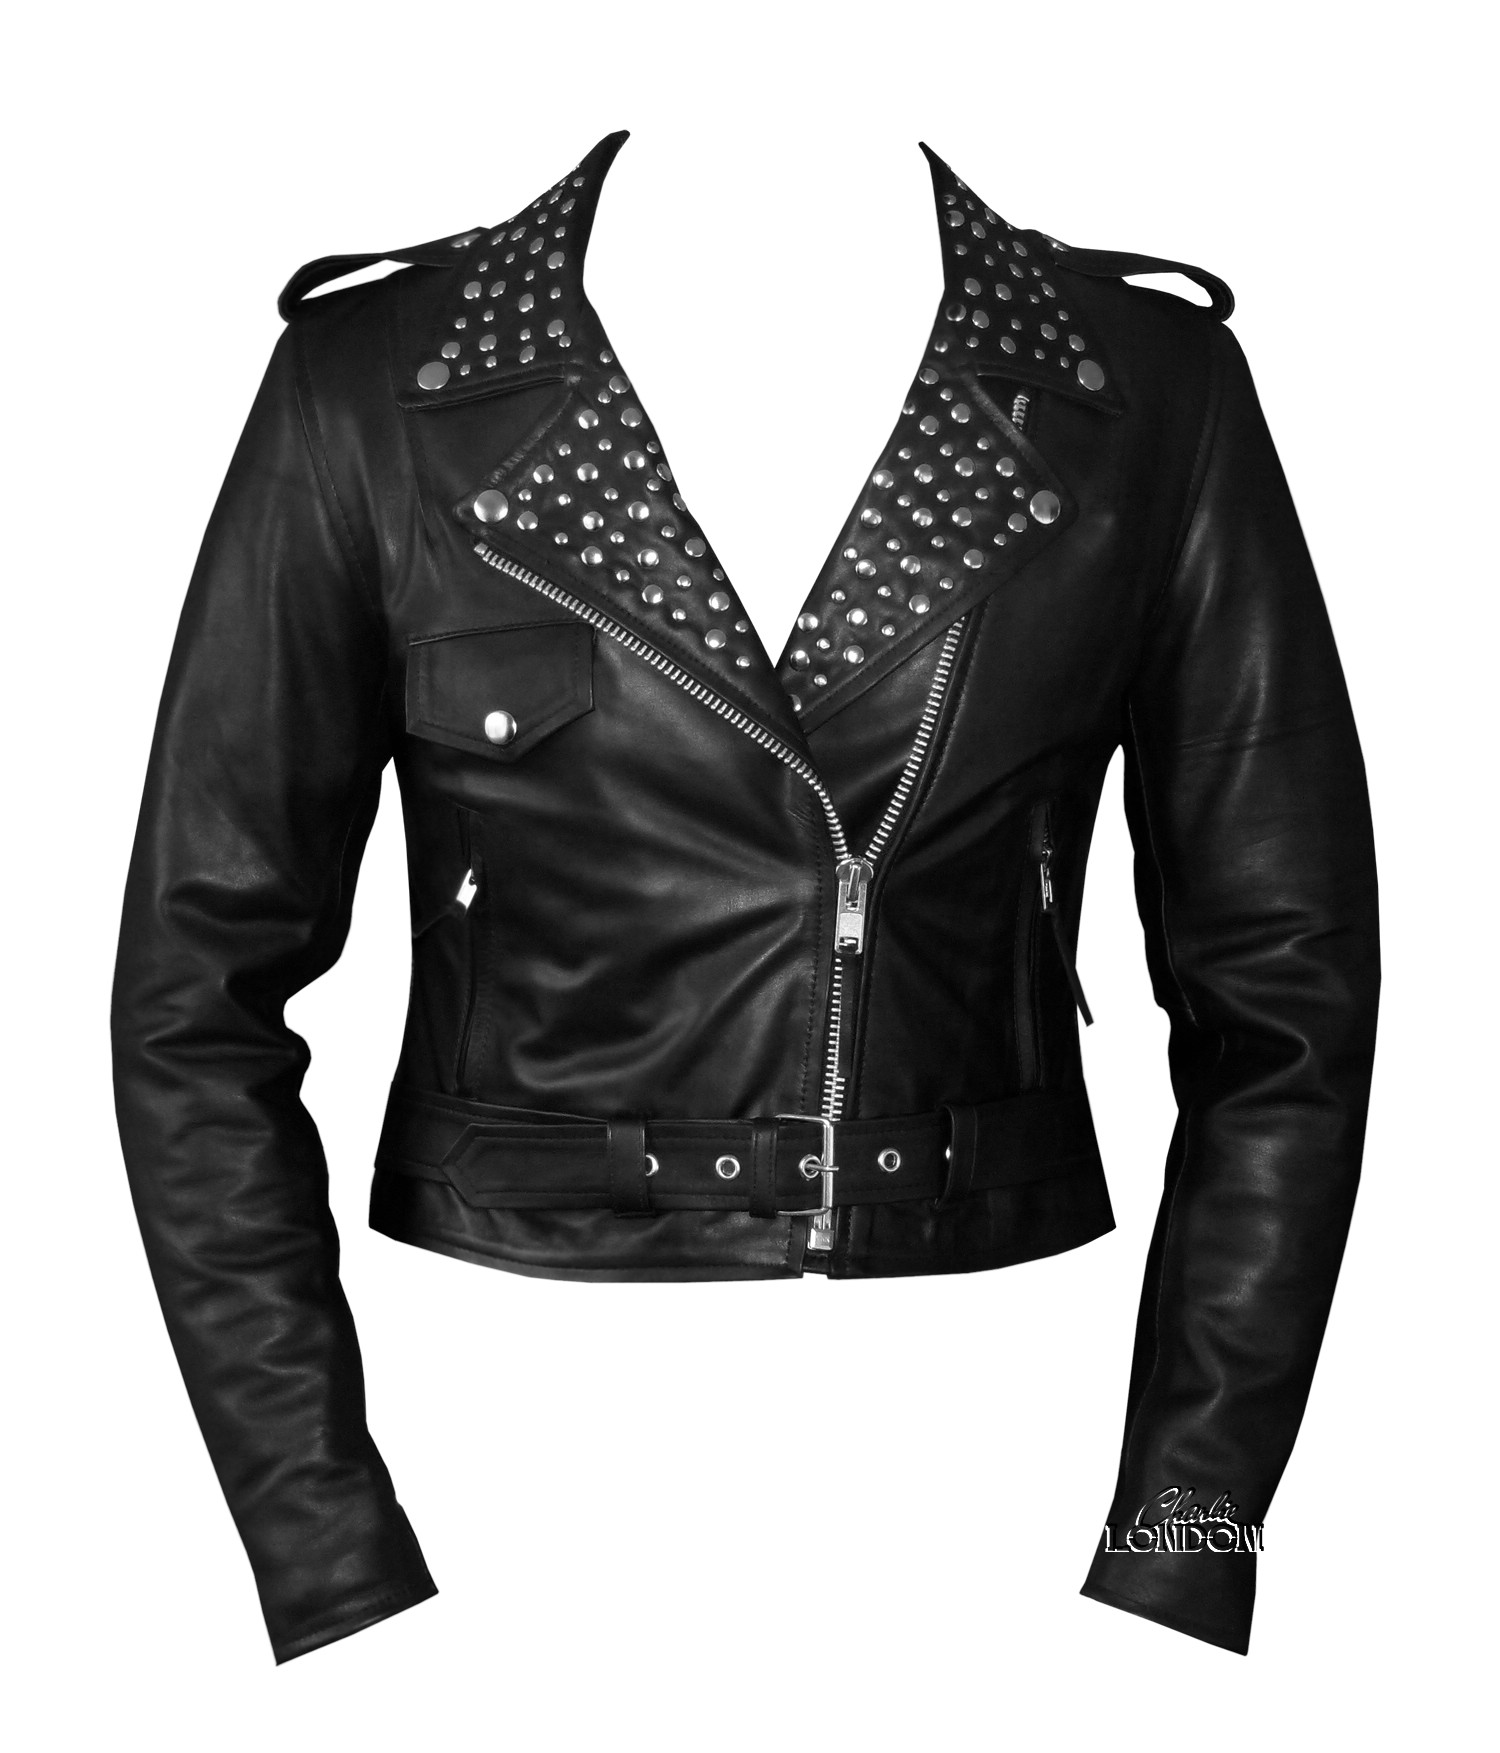 Women's Fashion Leather Jacket | Charlie London - Leather Jackets for Men and Women - FREE UK DELIVERY